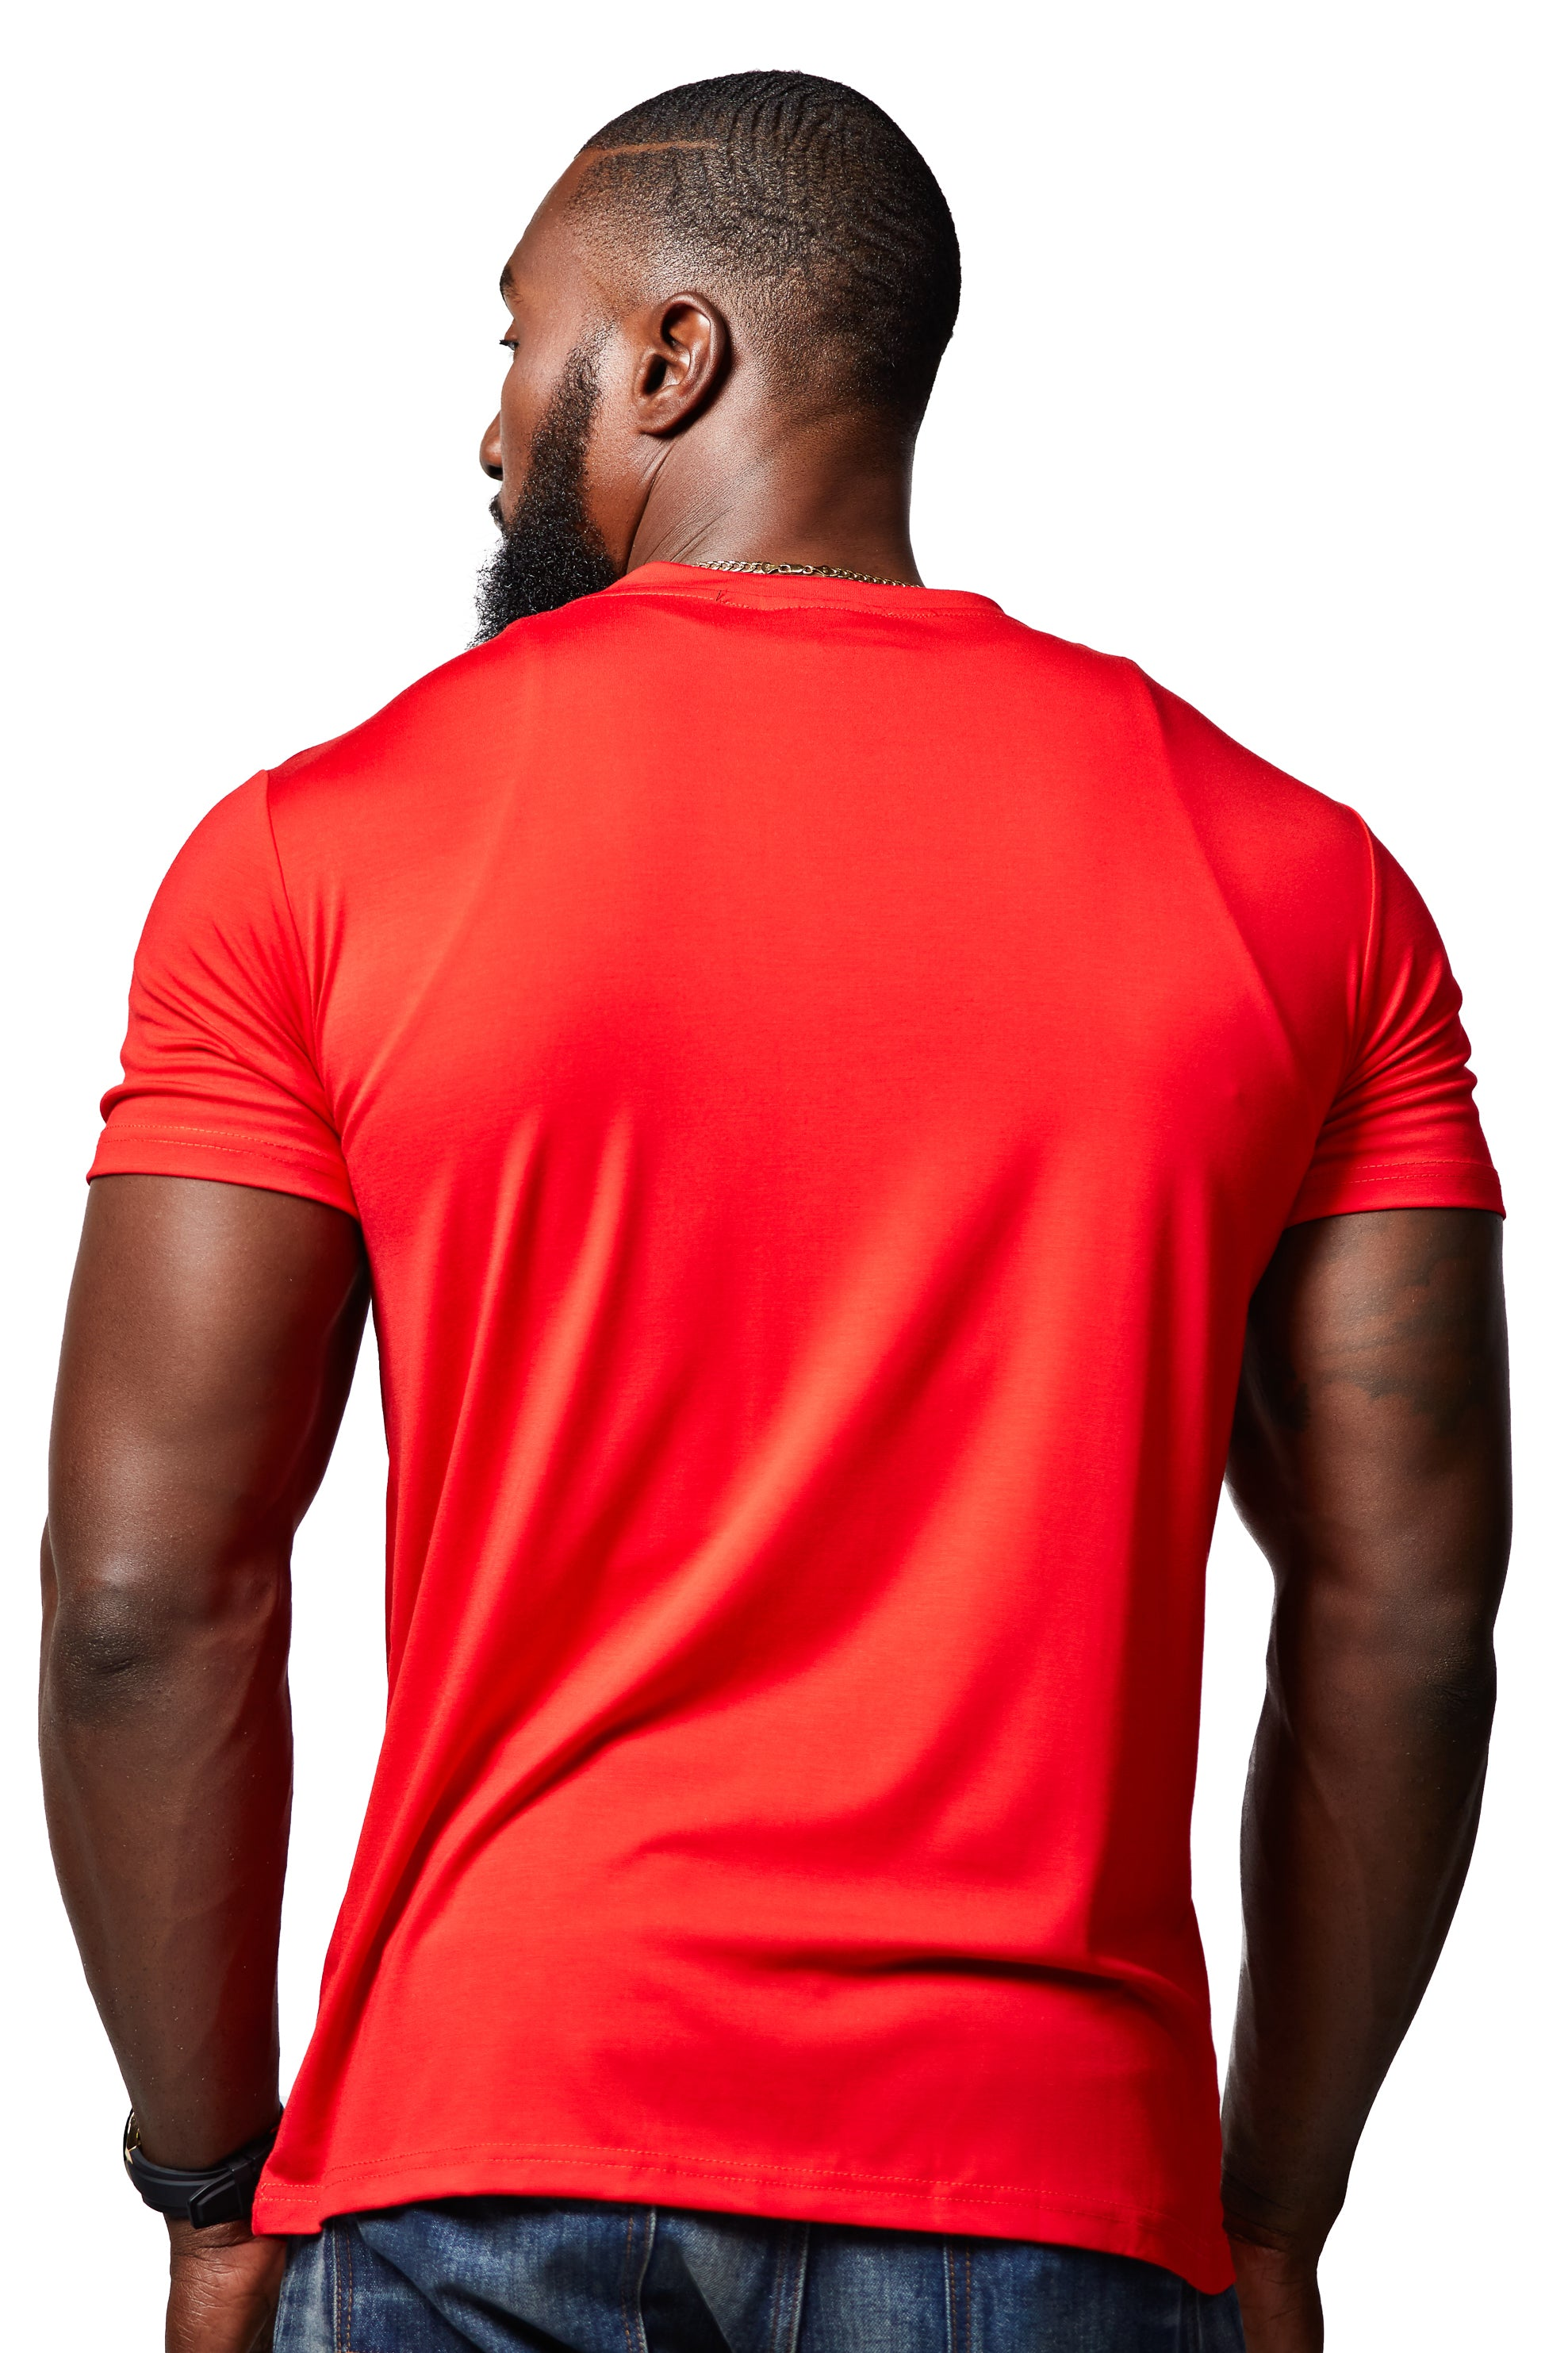 The Clura Velvet Tee - Red